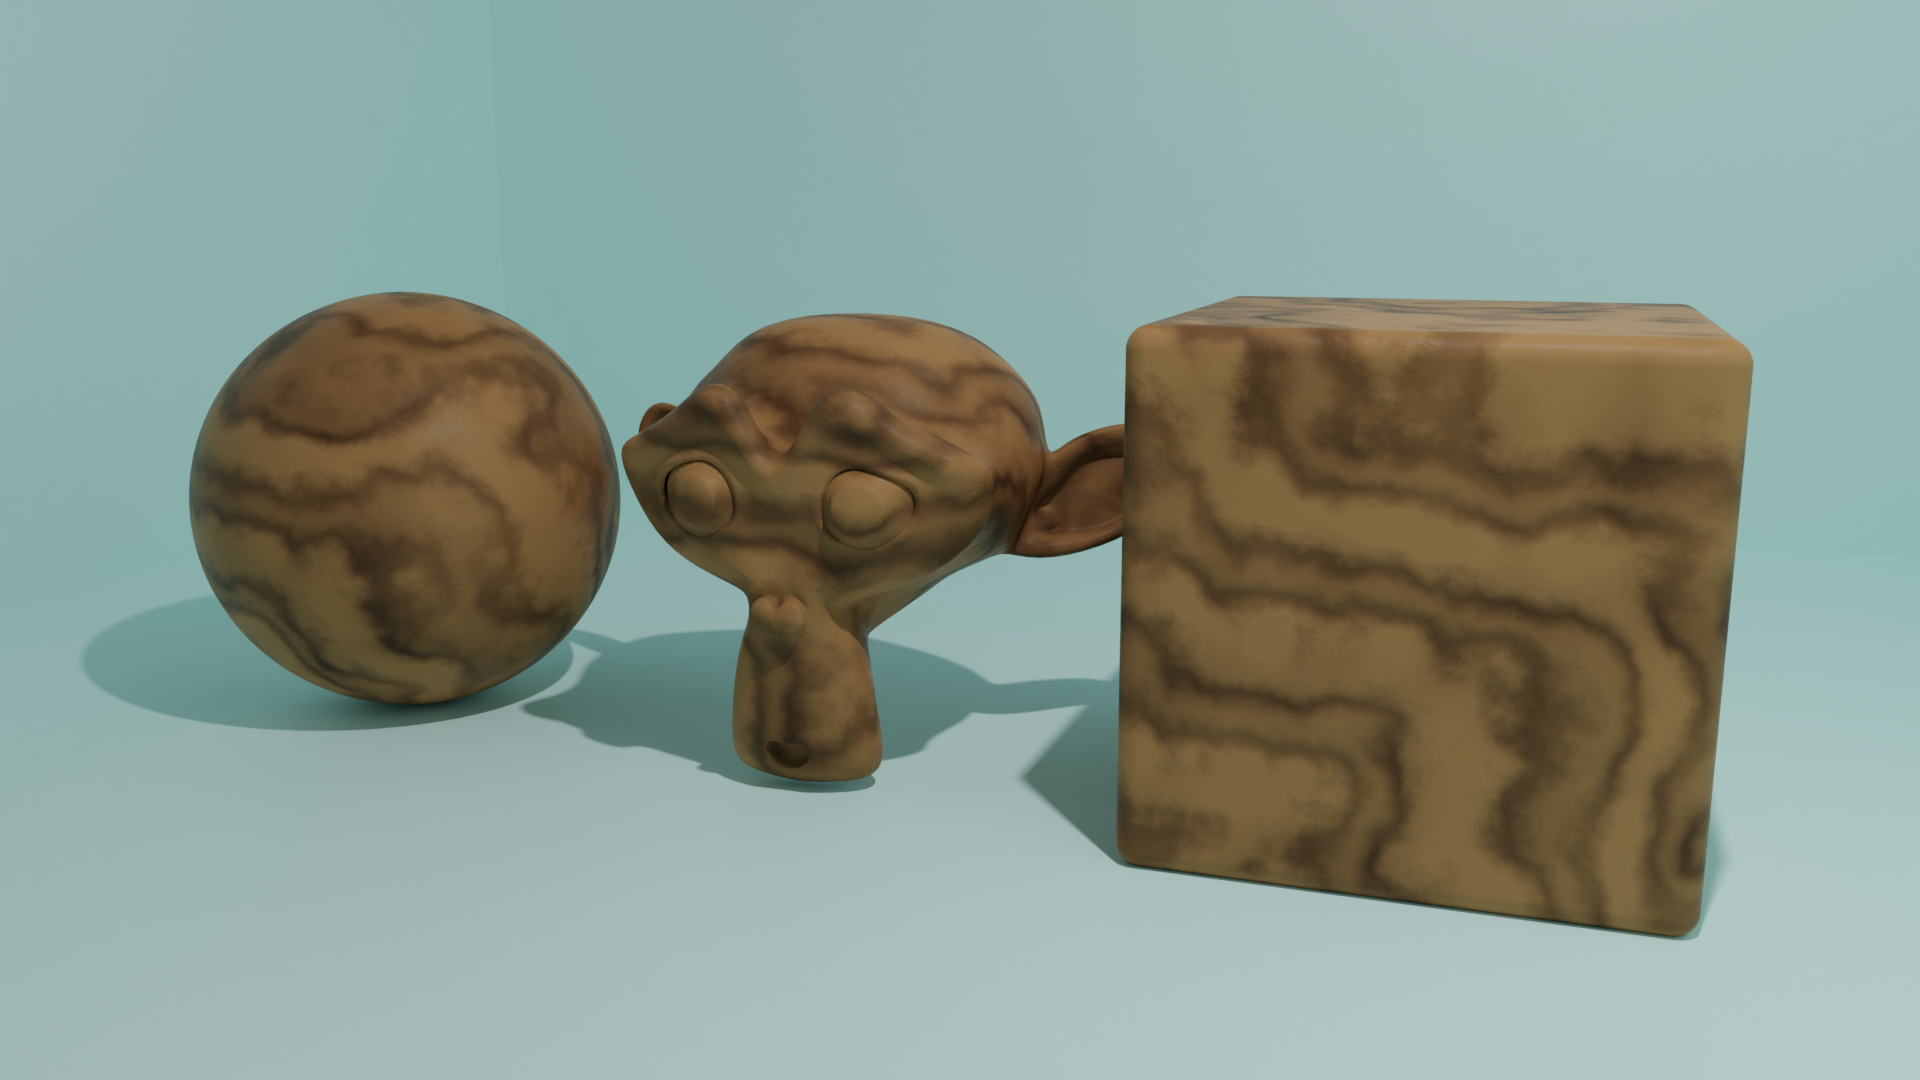 Procedural Wood Material preview image 1